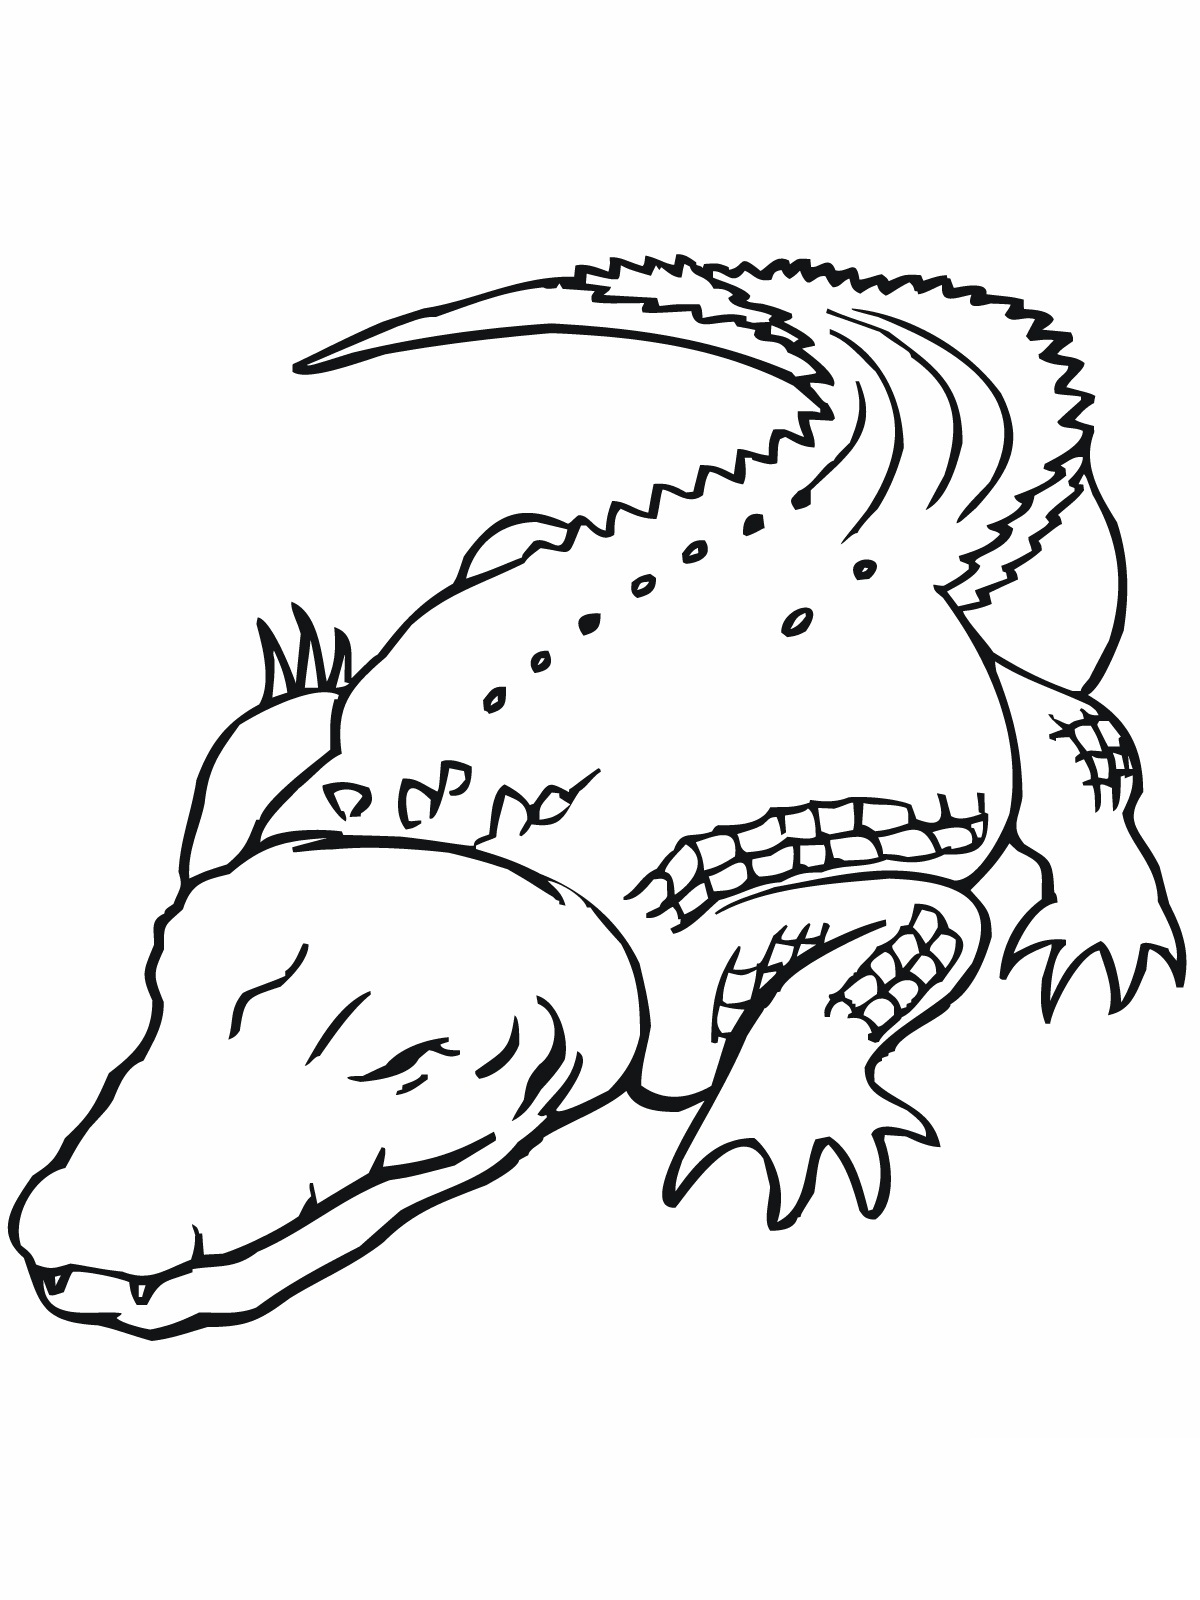 Uncategorized Crocodile Coloring Pages To Print free printable crocodile coloring pages for kids pages